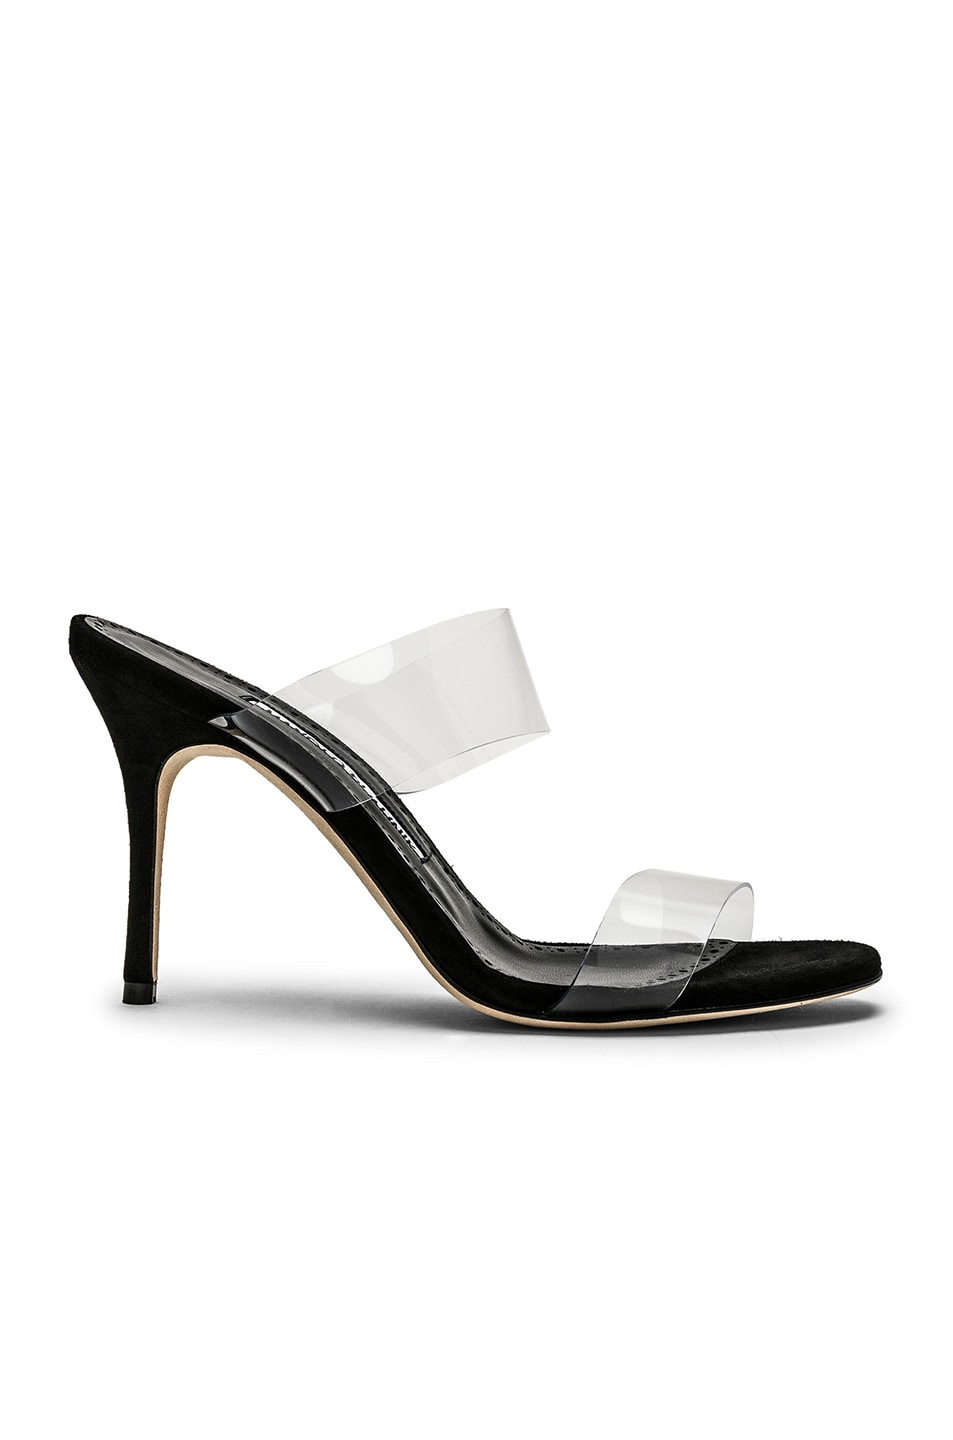 525b498d96d6 Image 1 of Manolo Blahnik PVC Scolto 90 Sandal in Black